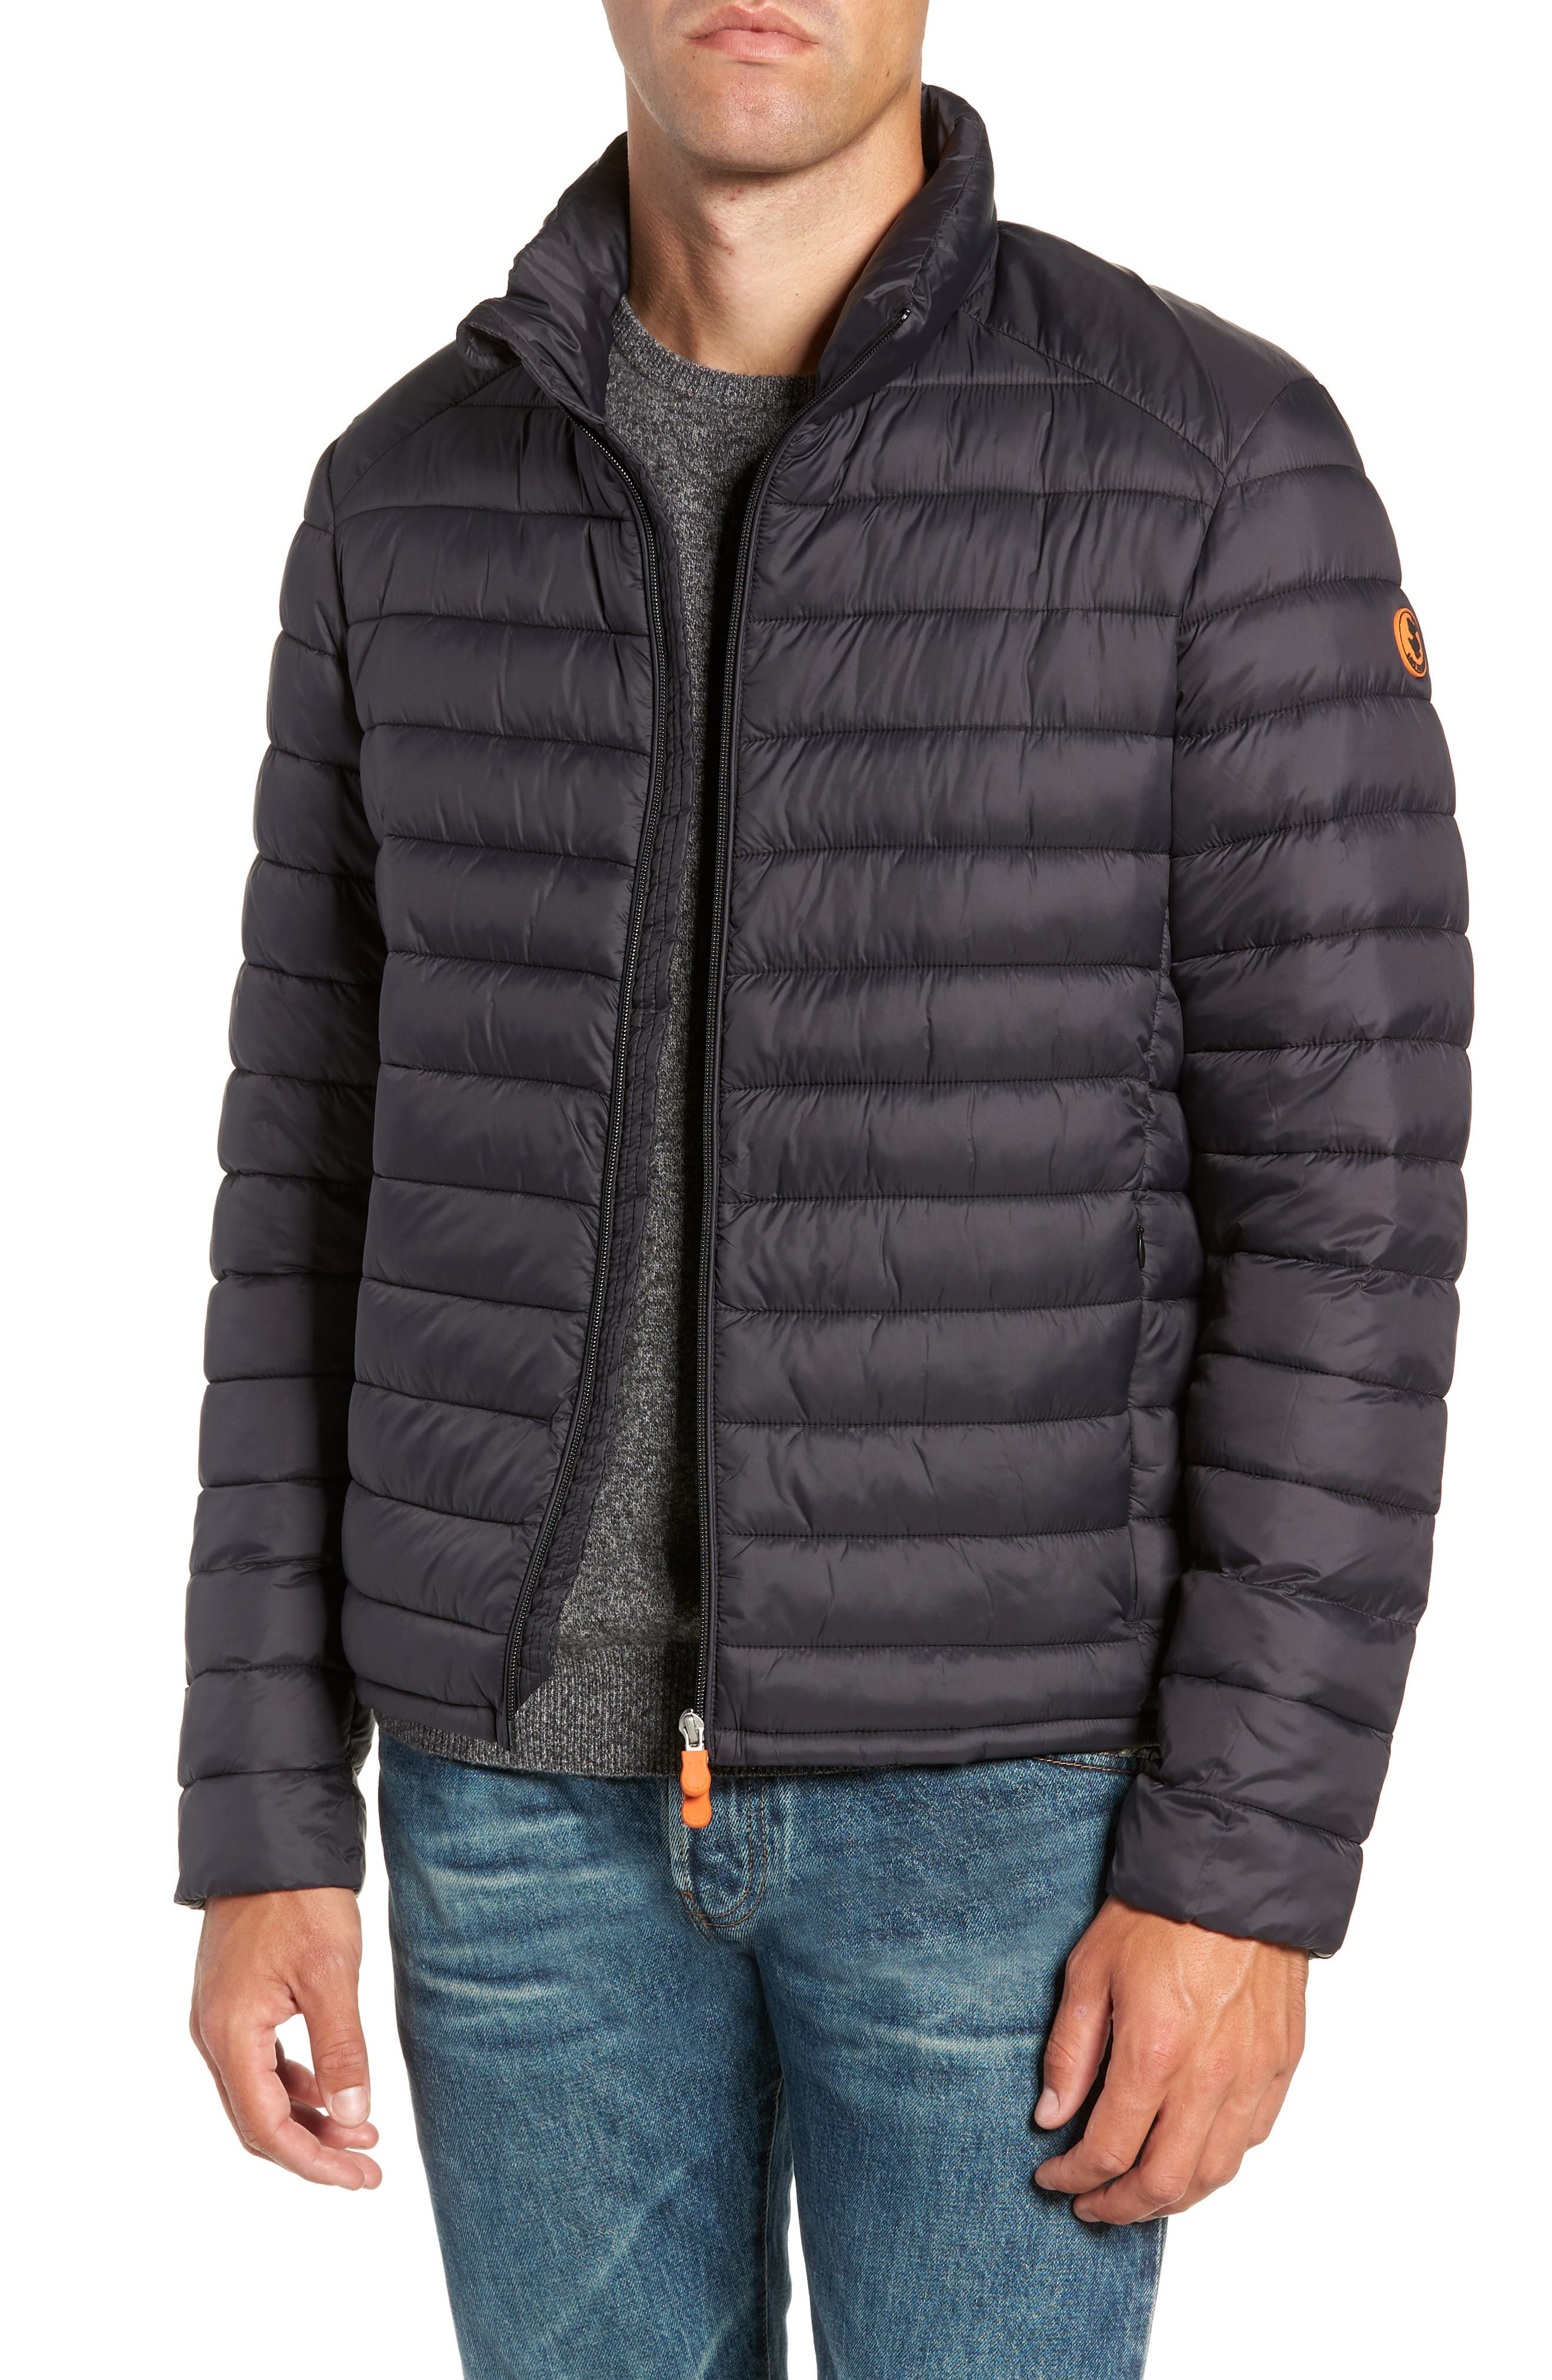 PLUMTECH<sup>®</sup> Insulated Packable Jacket,                             Main thumbnail 1, color,                             001